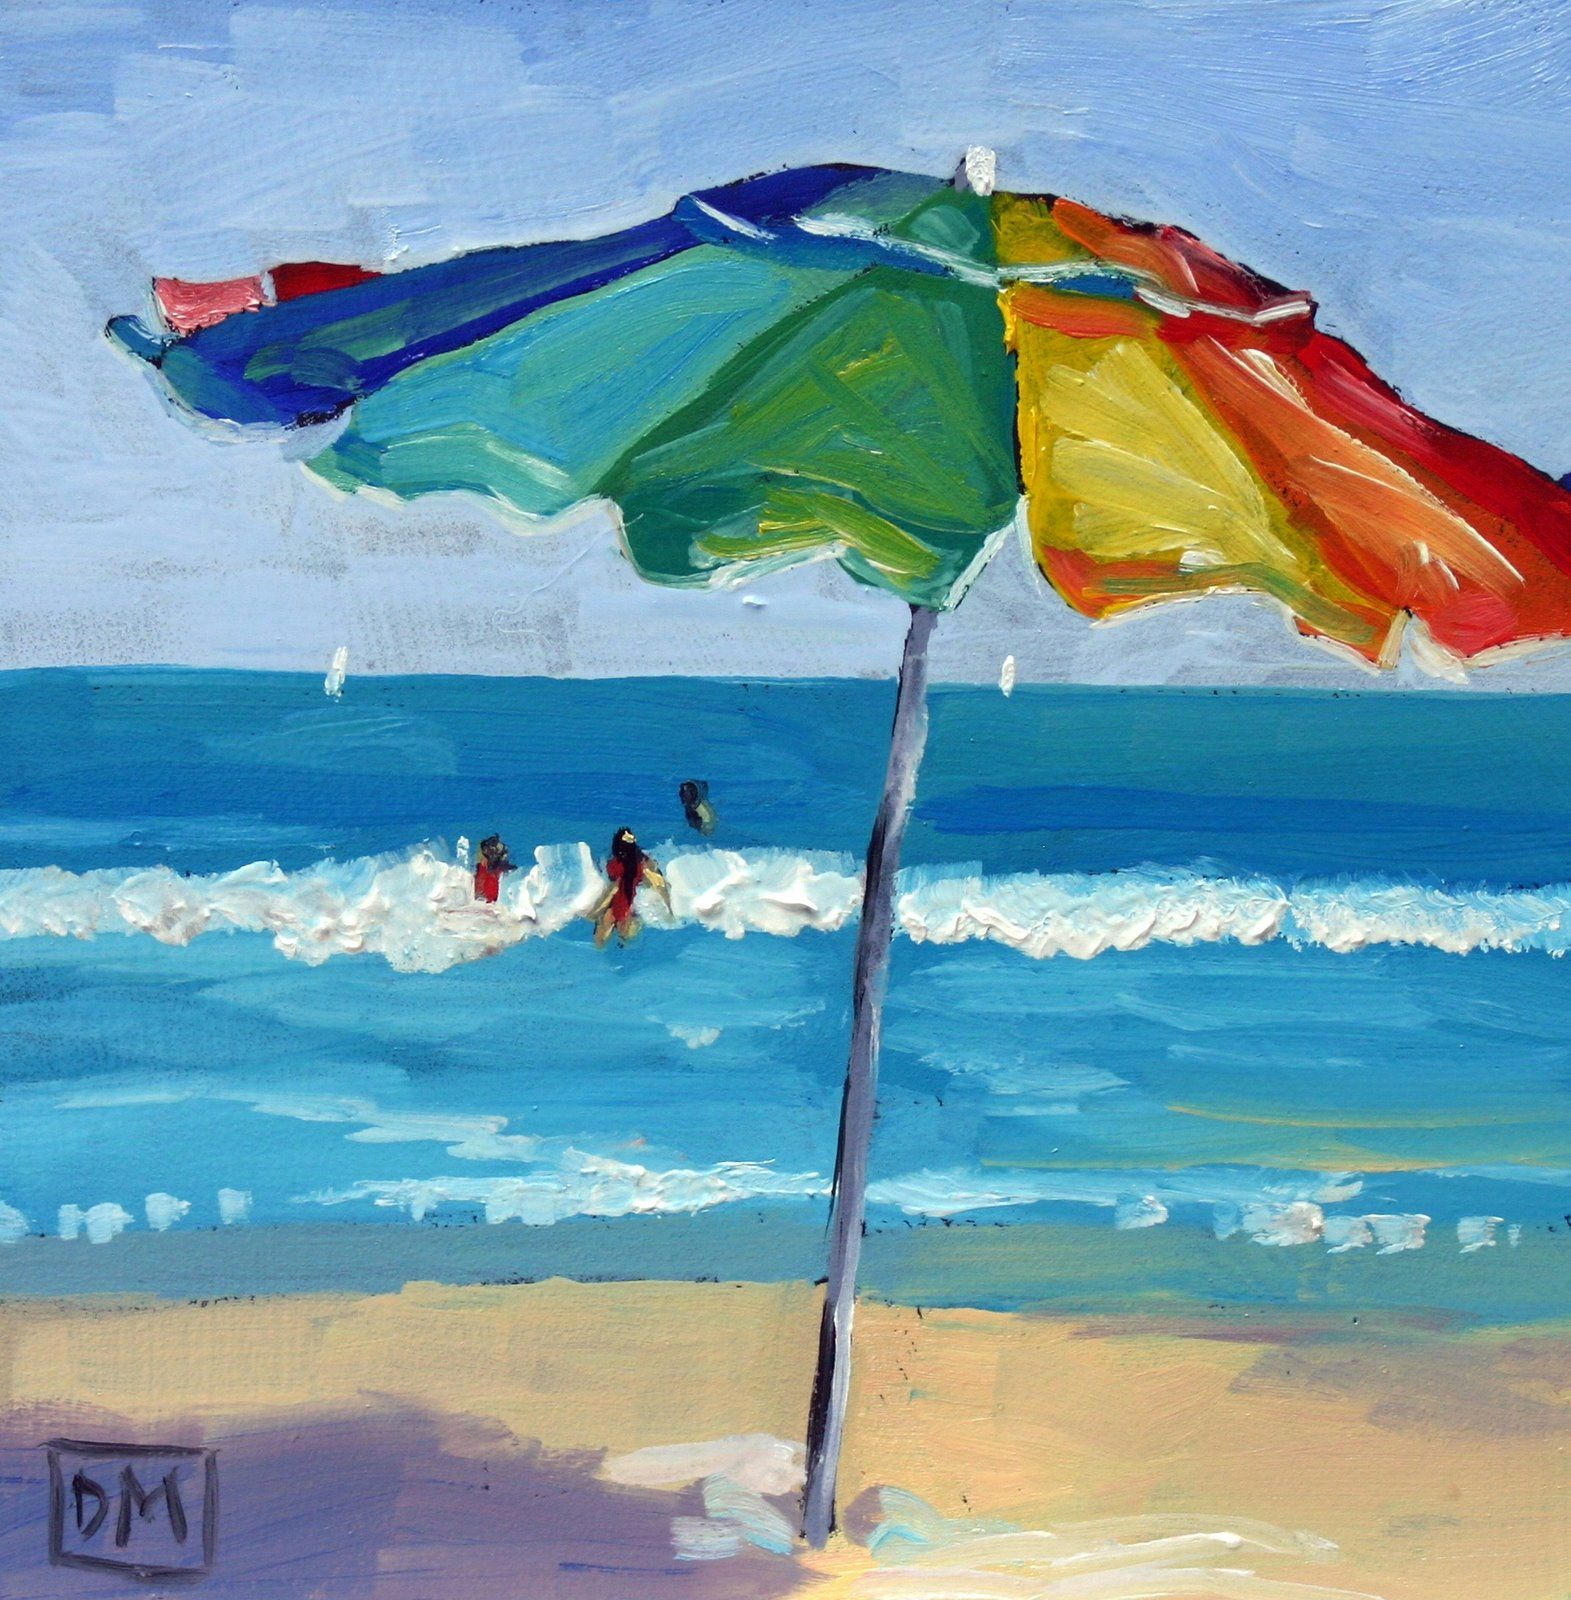 Debbie Miller Painting Lifes a Beach daily painting